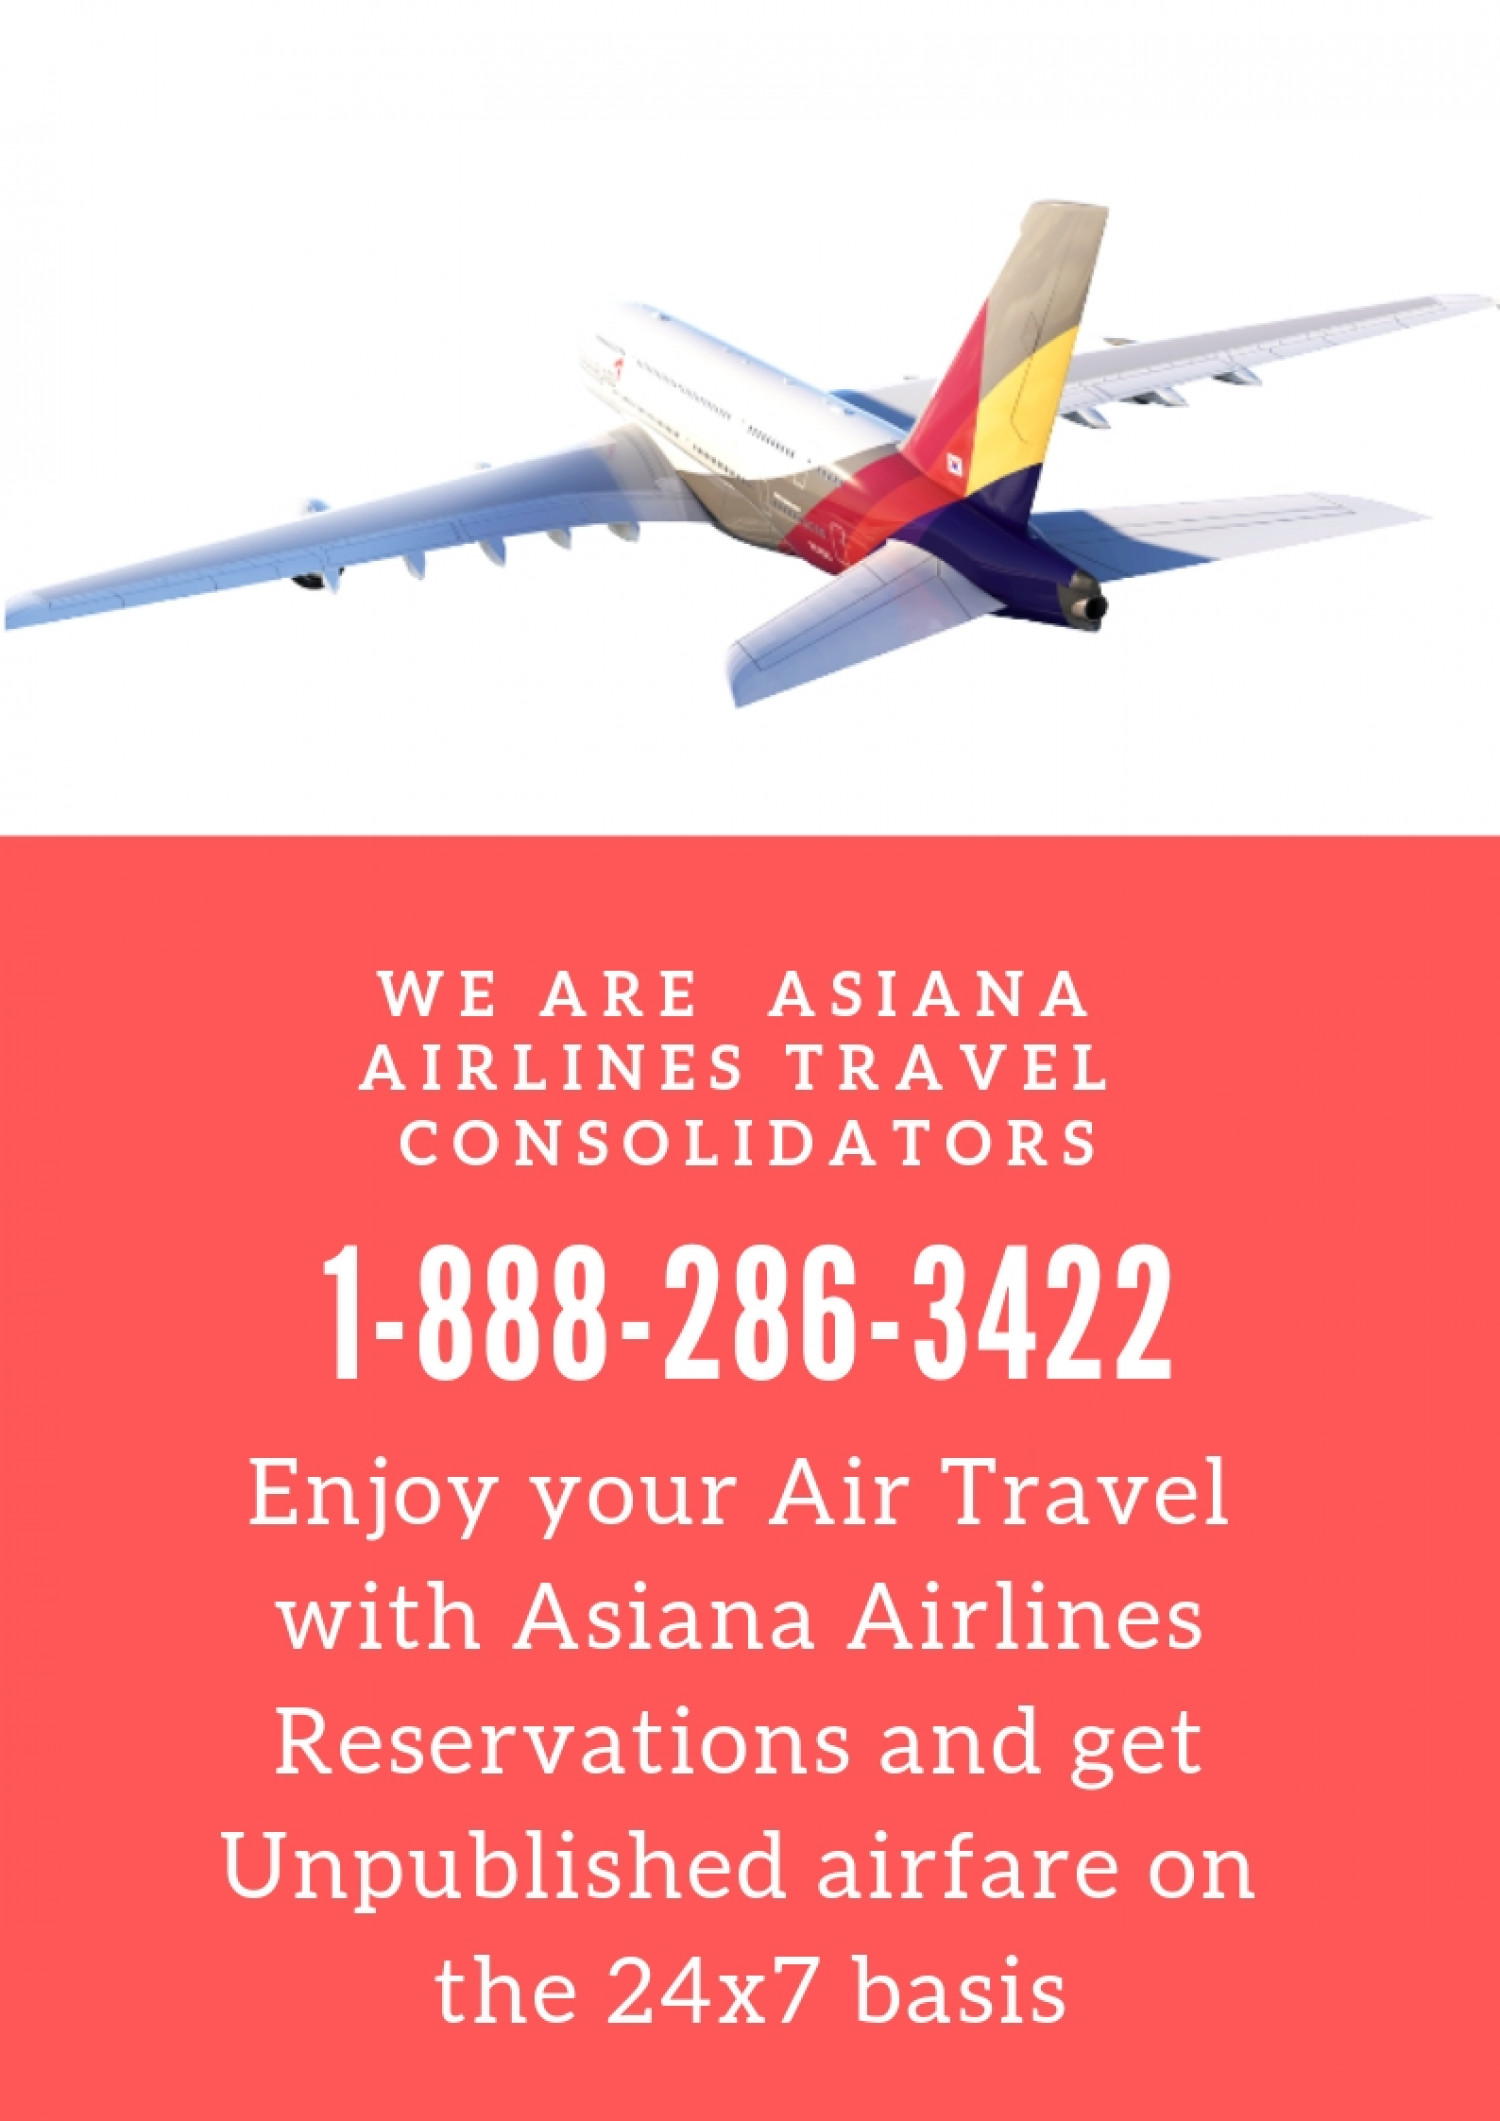 Asiana Airlines Online Reservations Phone Number Infographic